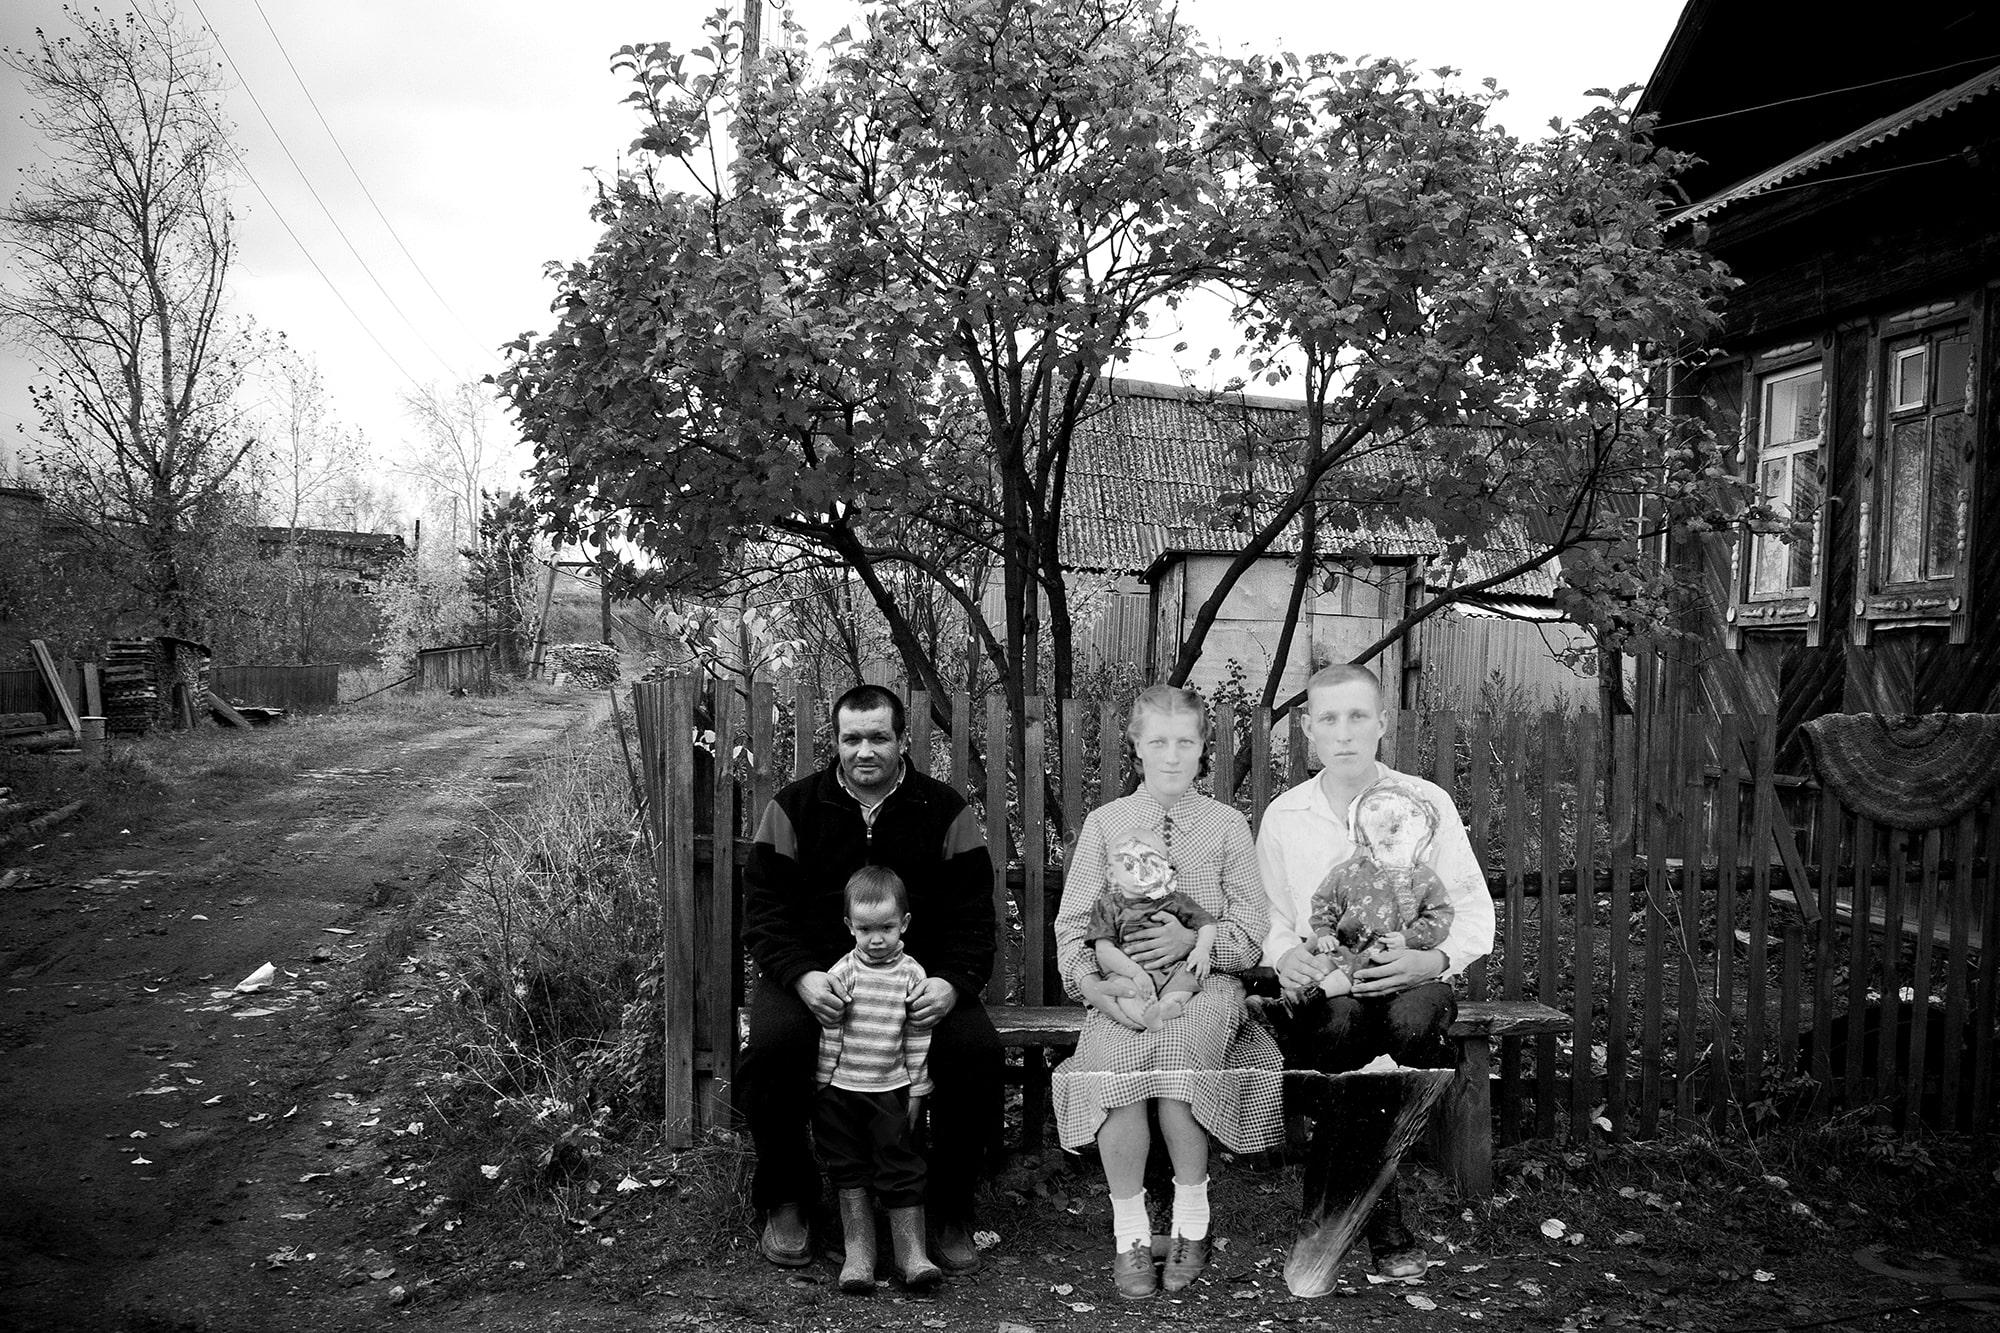 From the Staraya Utka project, 2013. The project includes Poteryaev's own works and the archival photographs of the residents